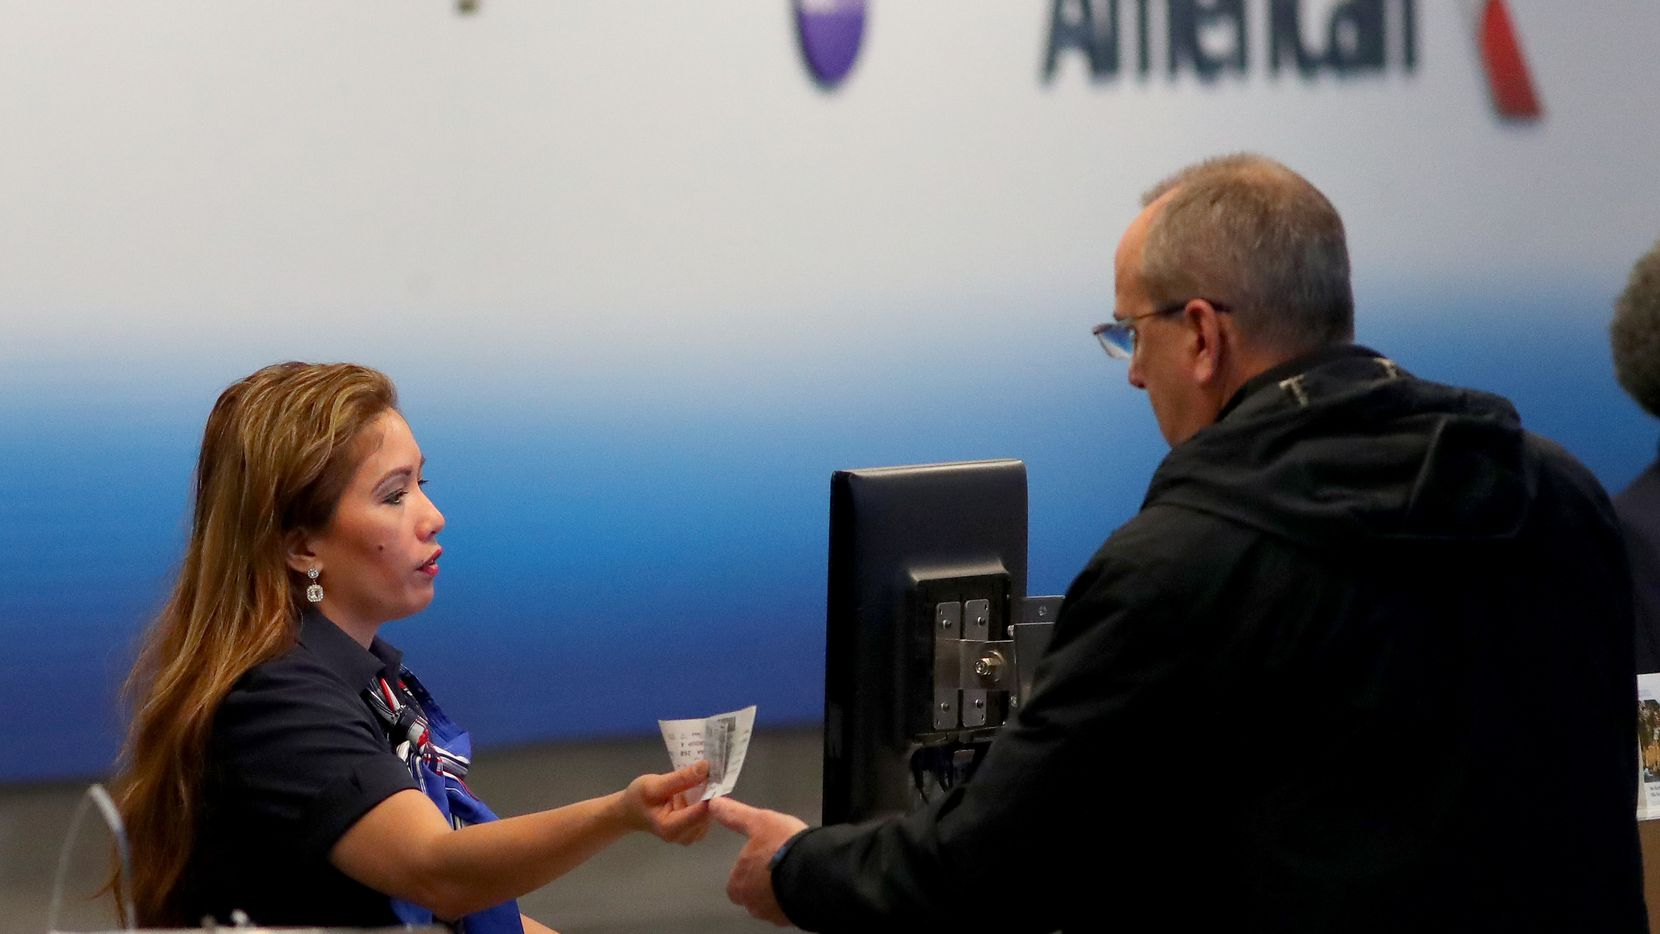 DALLAS, TEXAS - MARCH 13: A passenger checks in for an American Airlines in Terminal D at Dallas/Fort Worth International Airport (DFW) on March 13, 2020 in Dallas, Texas. American Airlines announced that it is cutting a third of its international flights amid a major slowdown due to the Coronavirus (COVID-19) outbreak. (Photo by Tom Pennington/Getty Images)